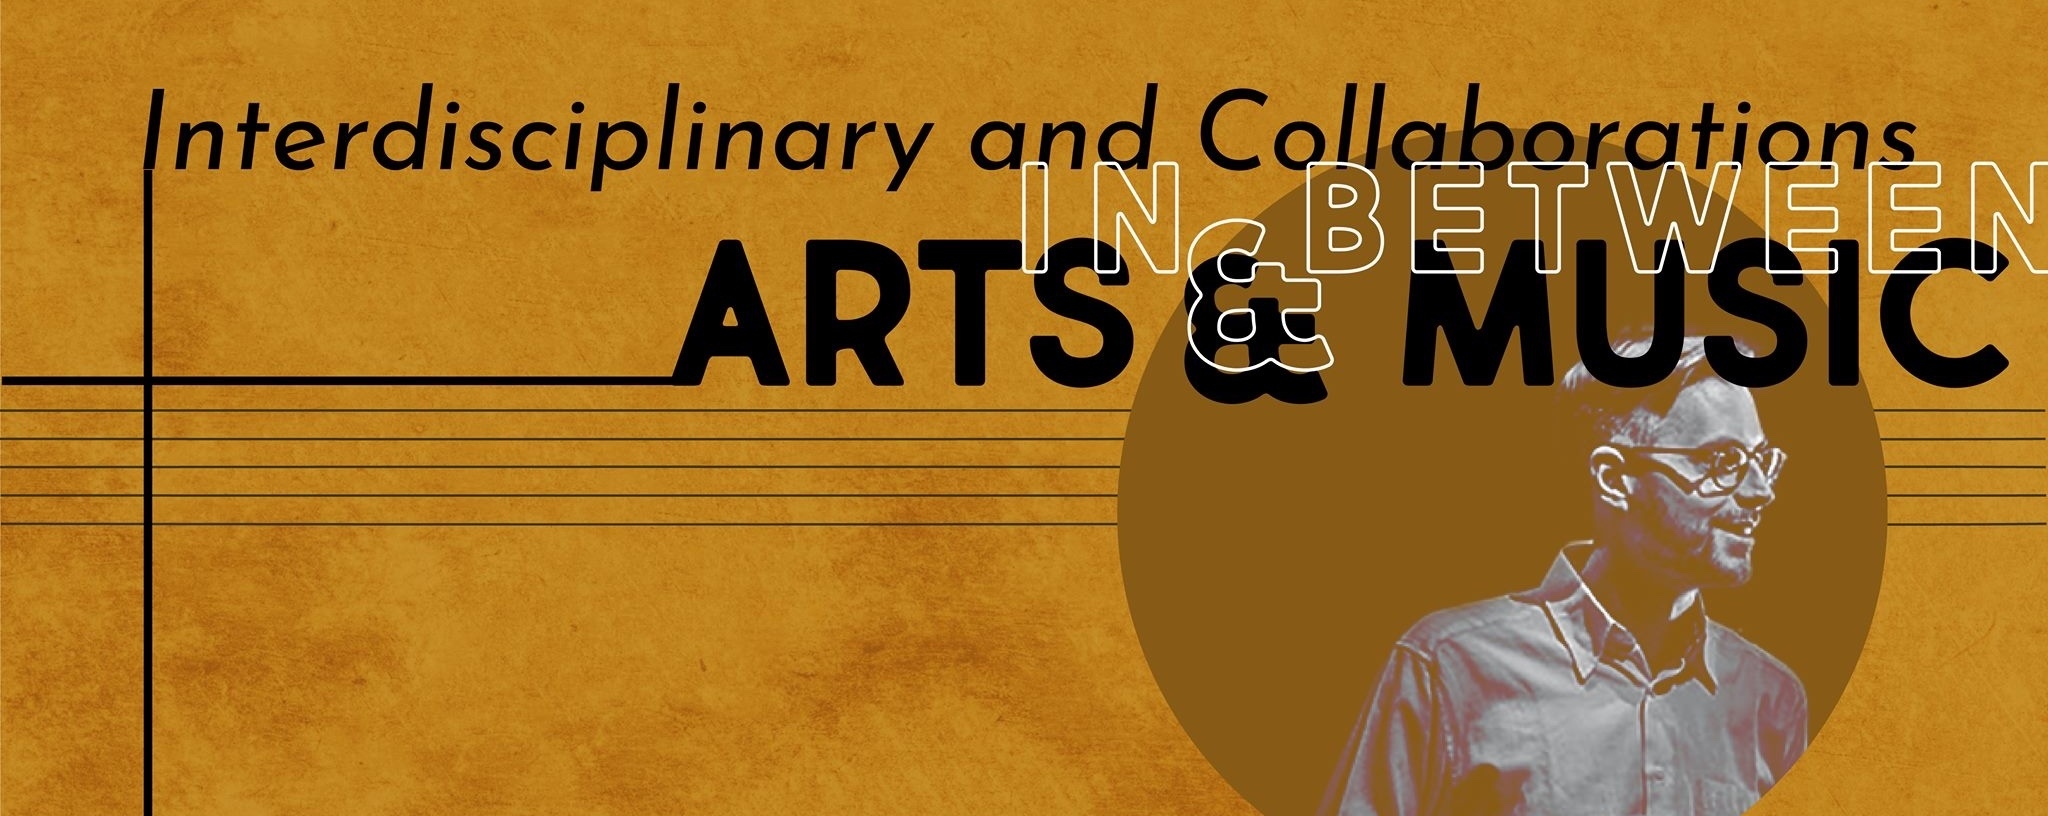 Interdisciplinary & Collaborations in & between the Arts & Music